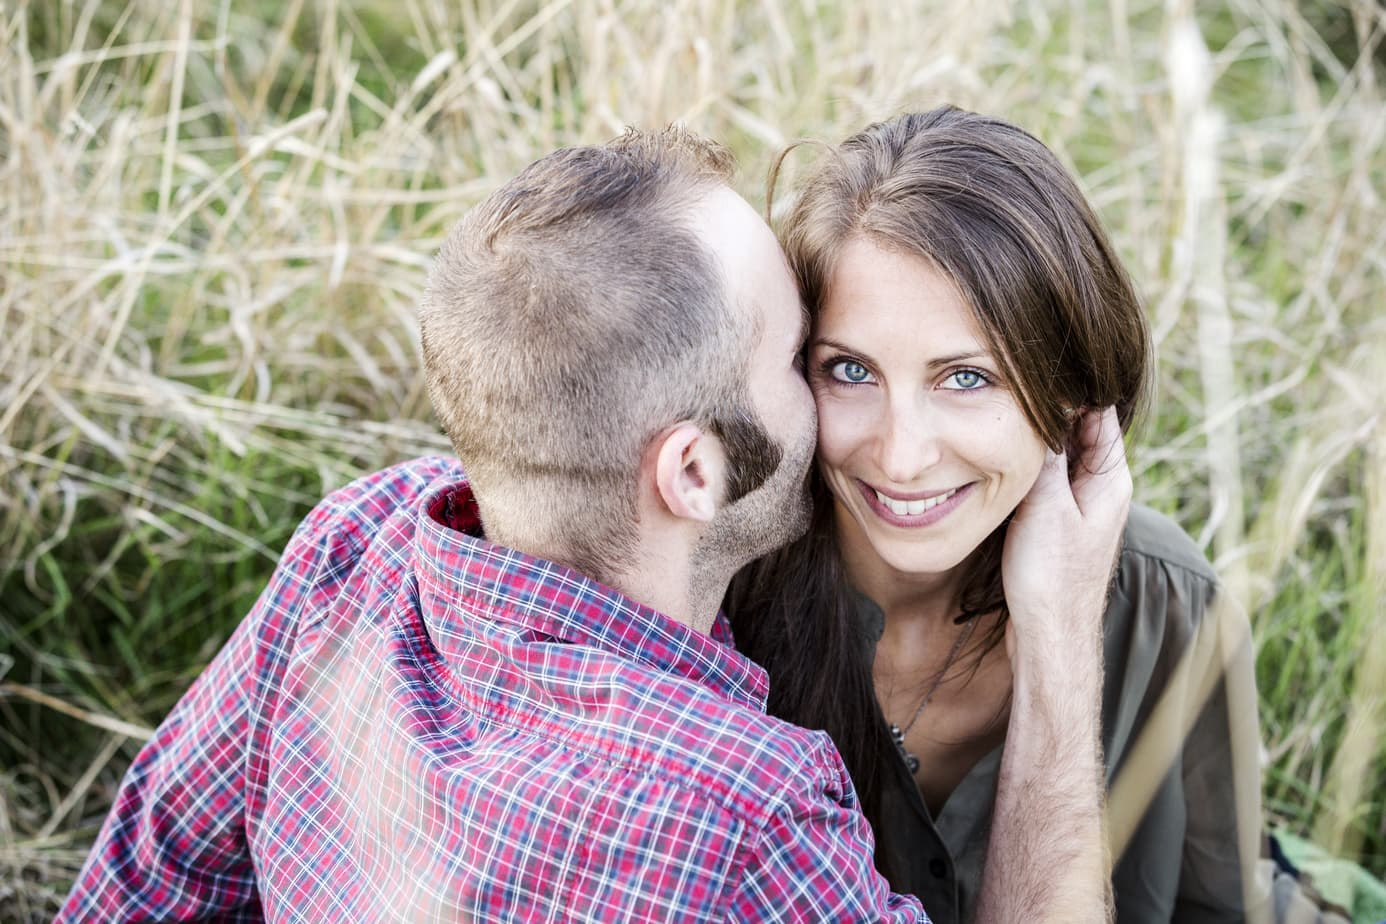 Engagement Shooting in der Herbstsonne